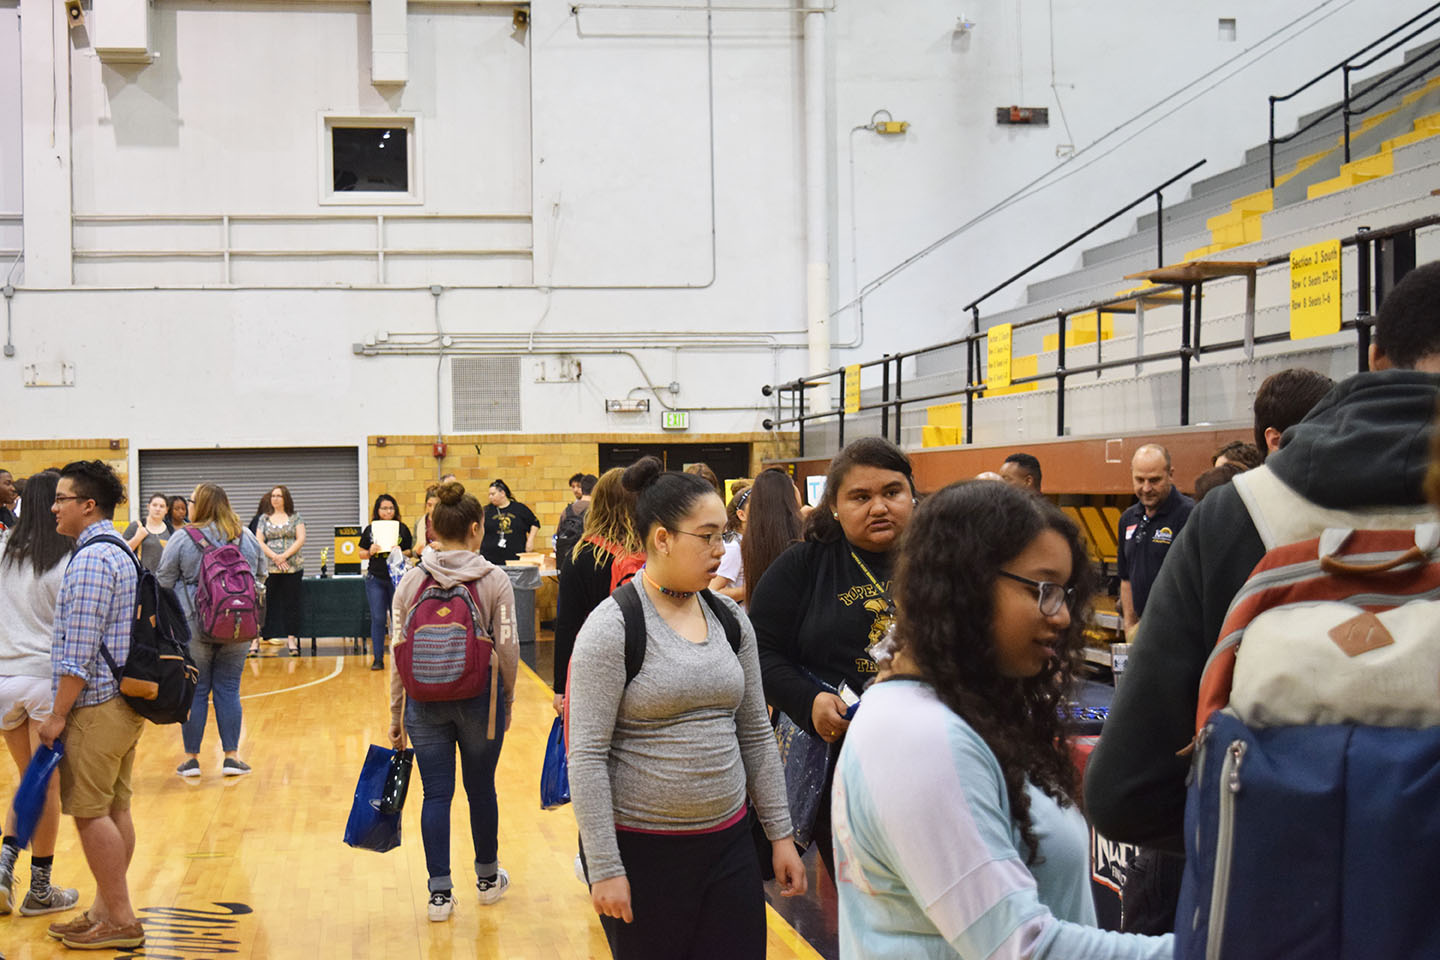 The career fair comes to towards the end of every school year to help students find summer jobs and future employment opportunities.